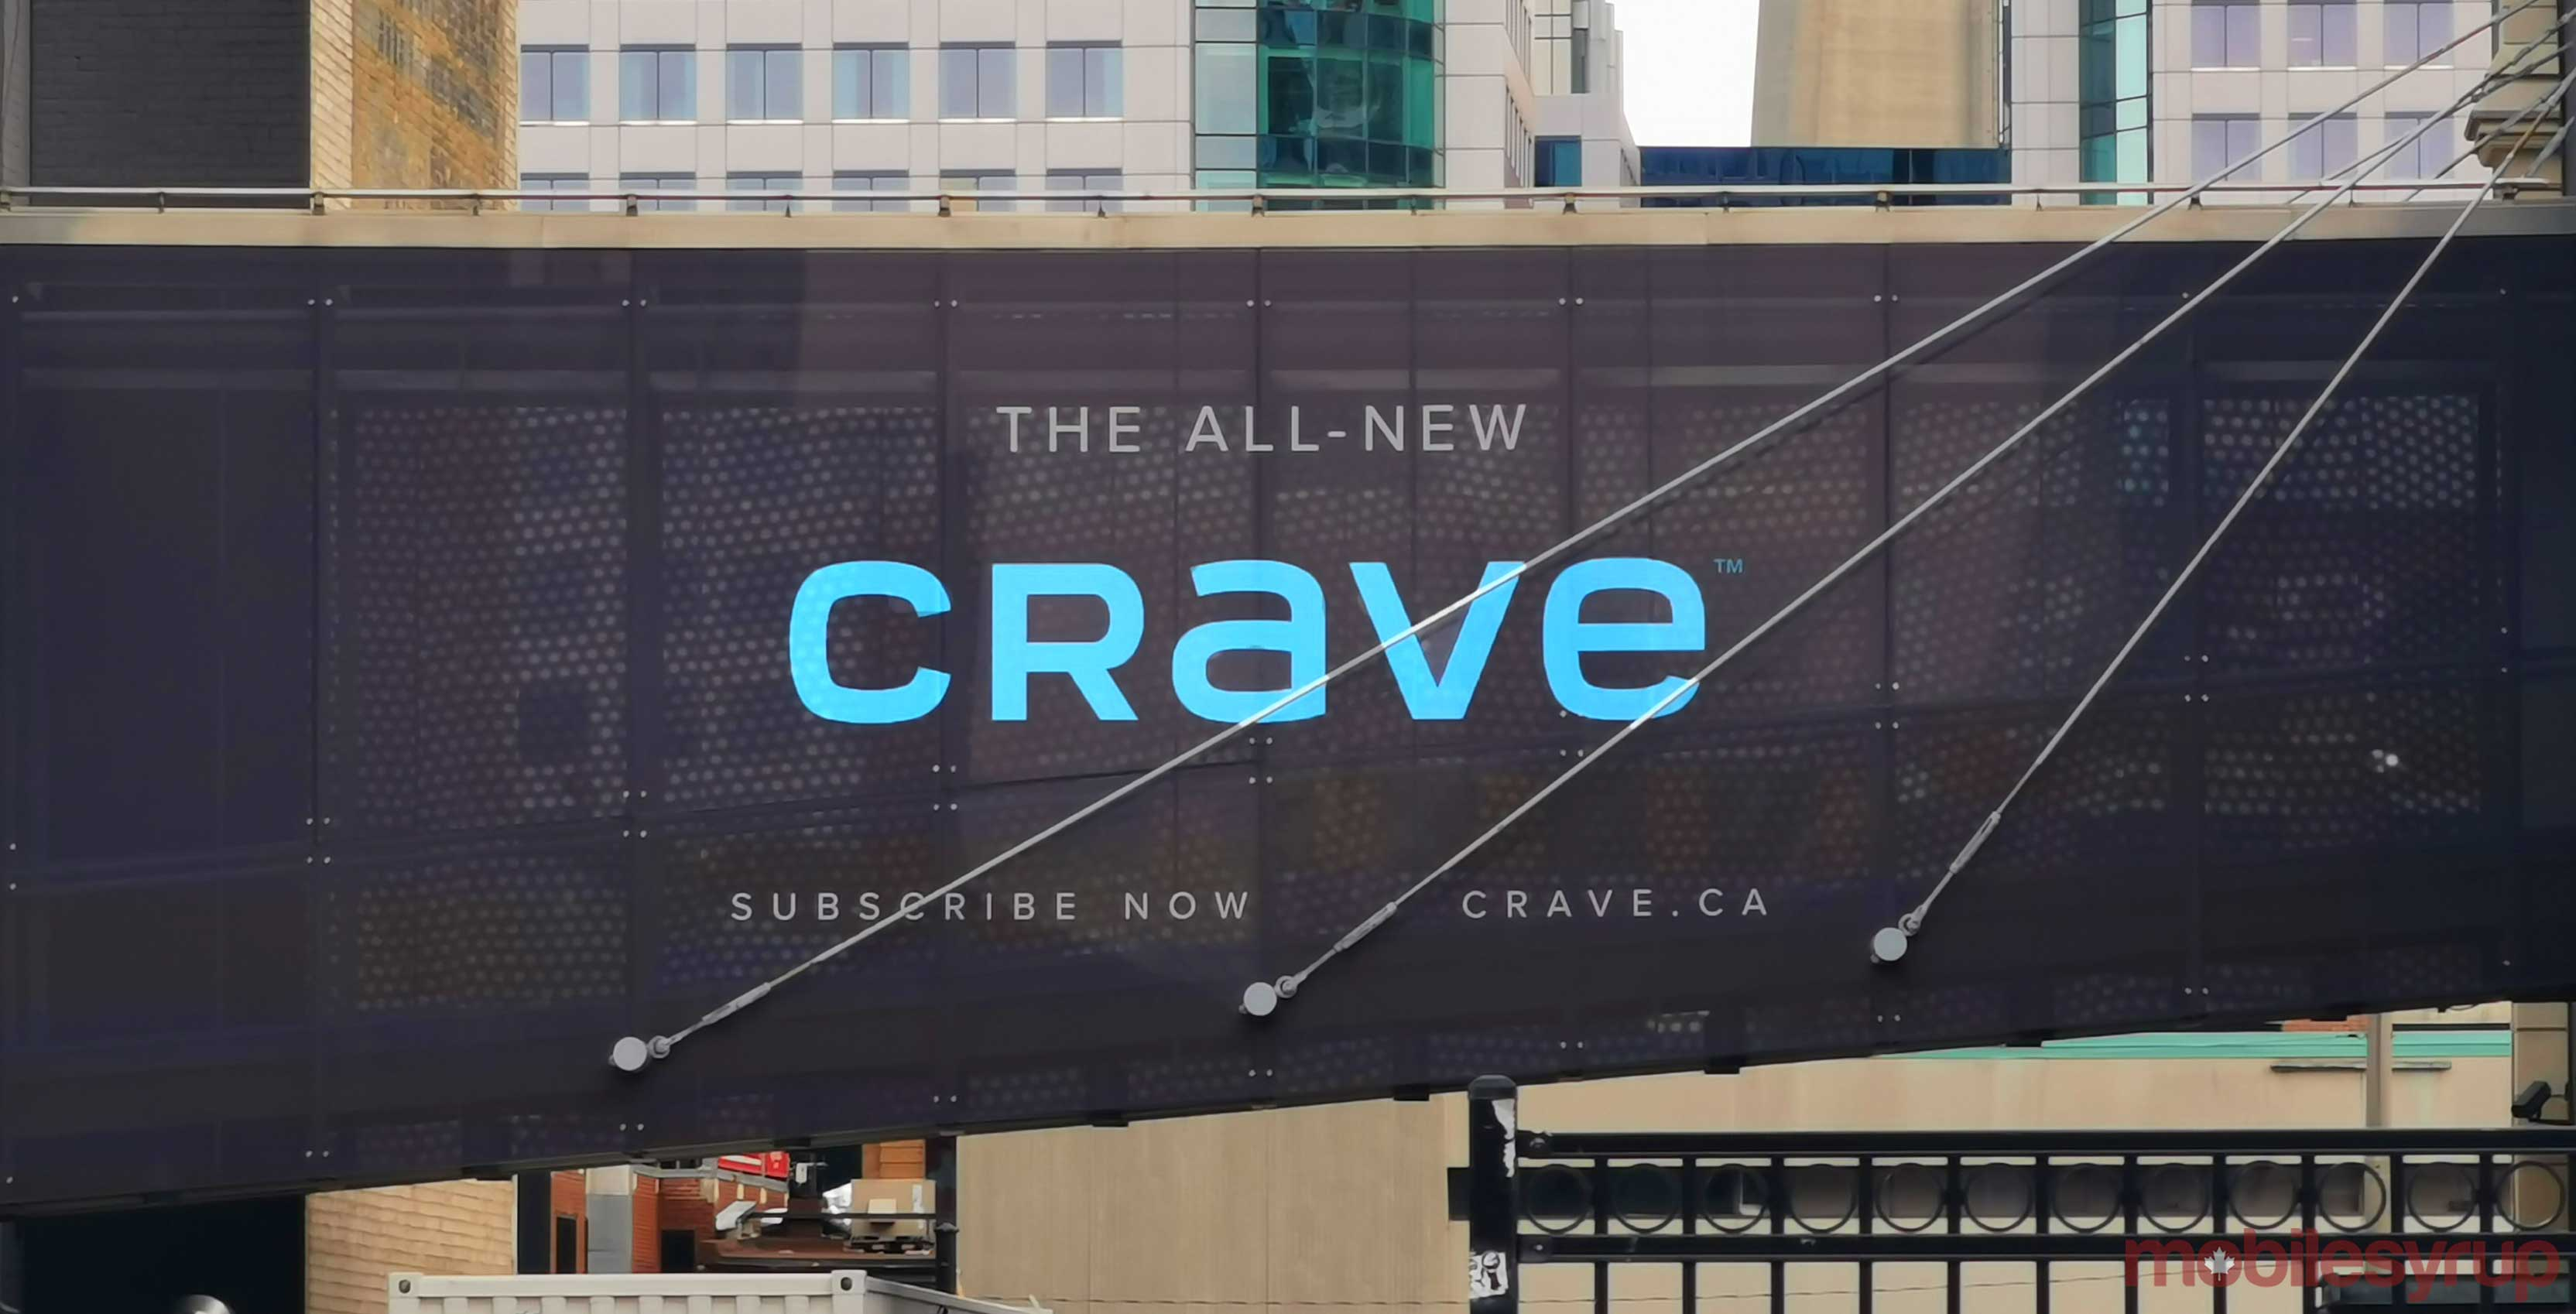 Here's a list of some HBO content coming to Crave this year